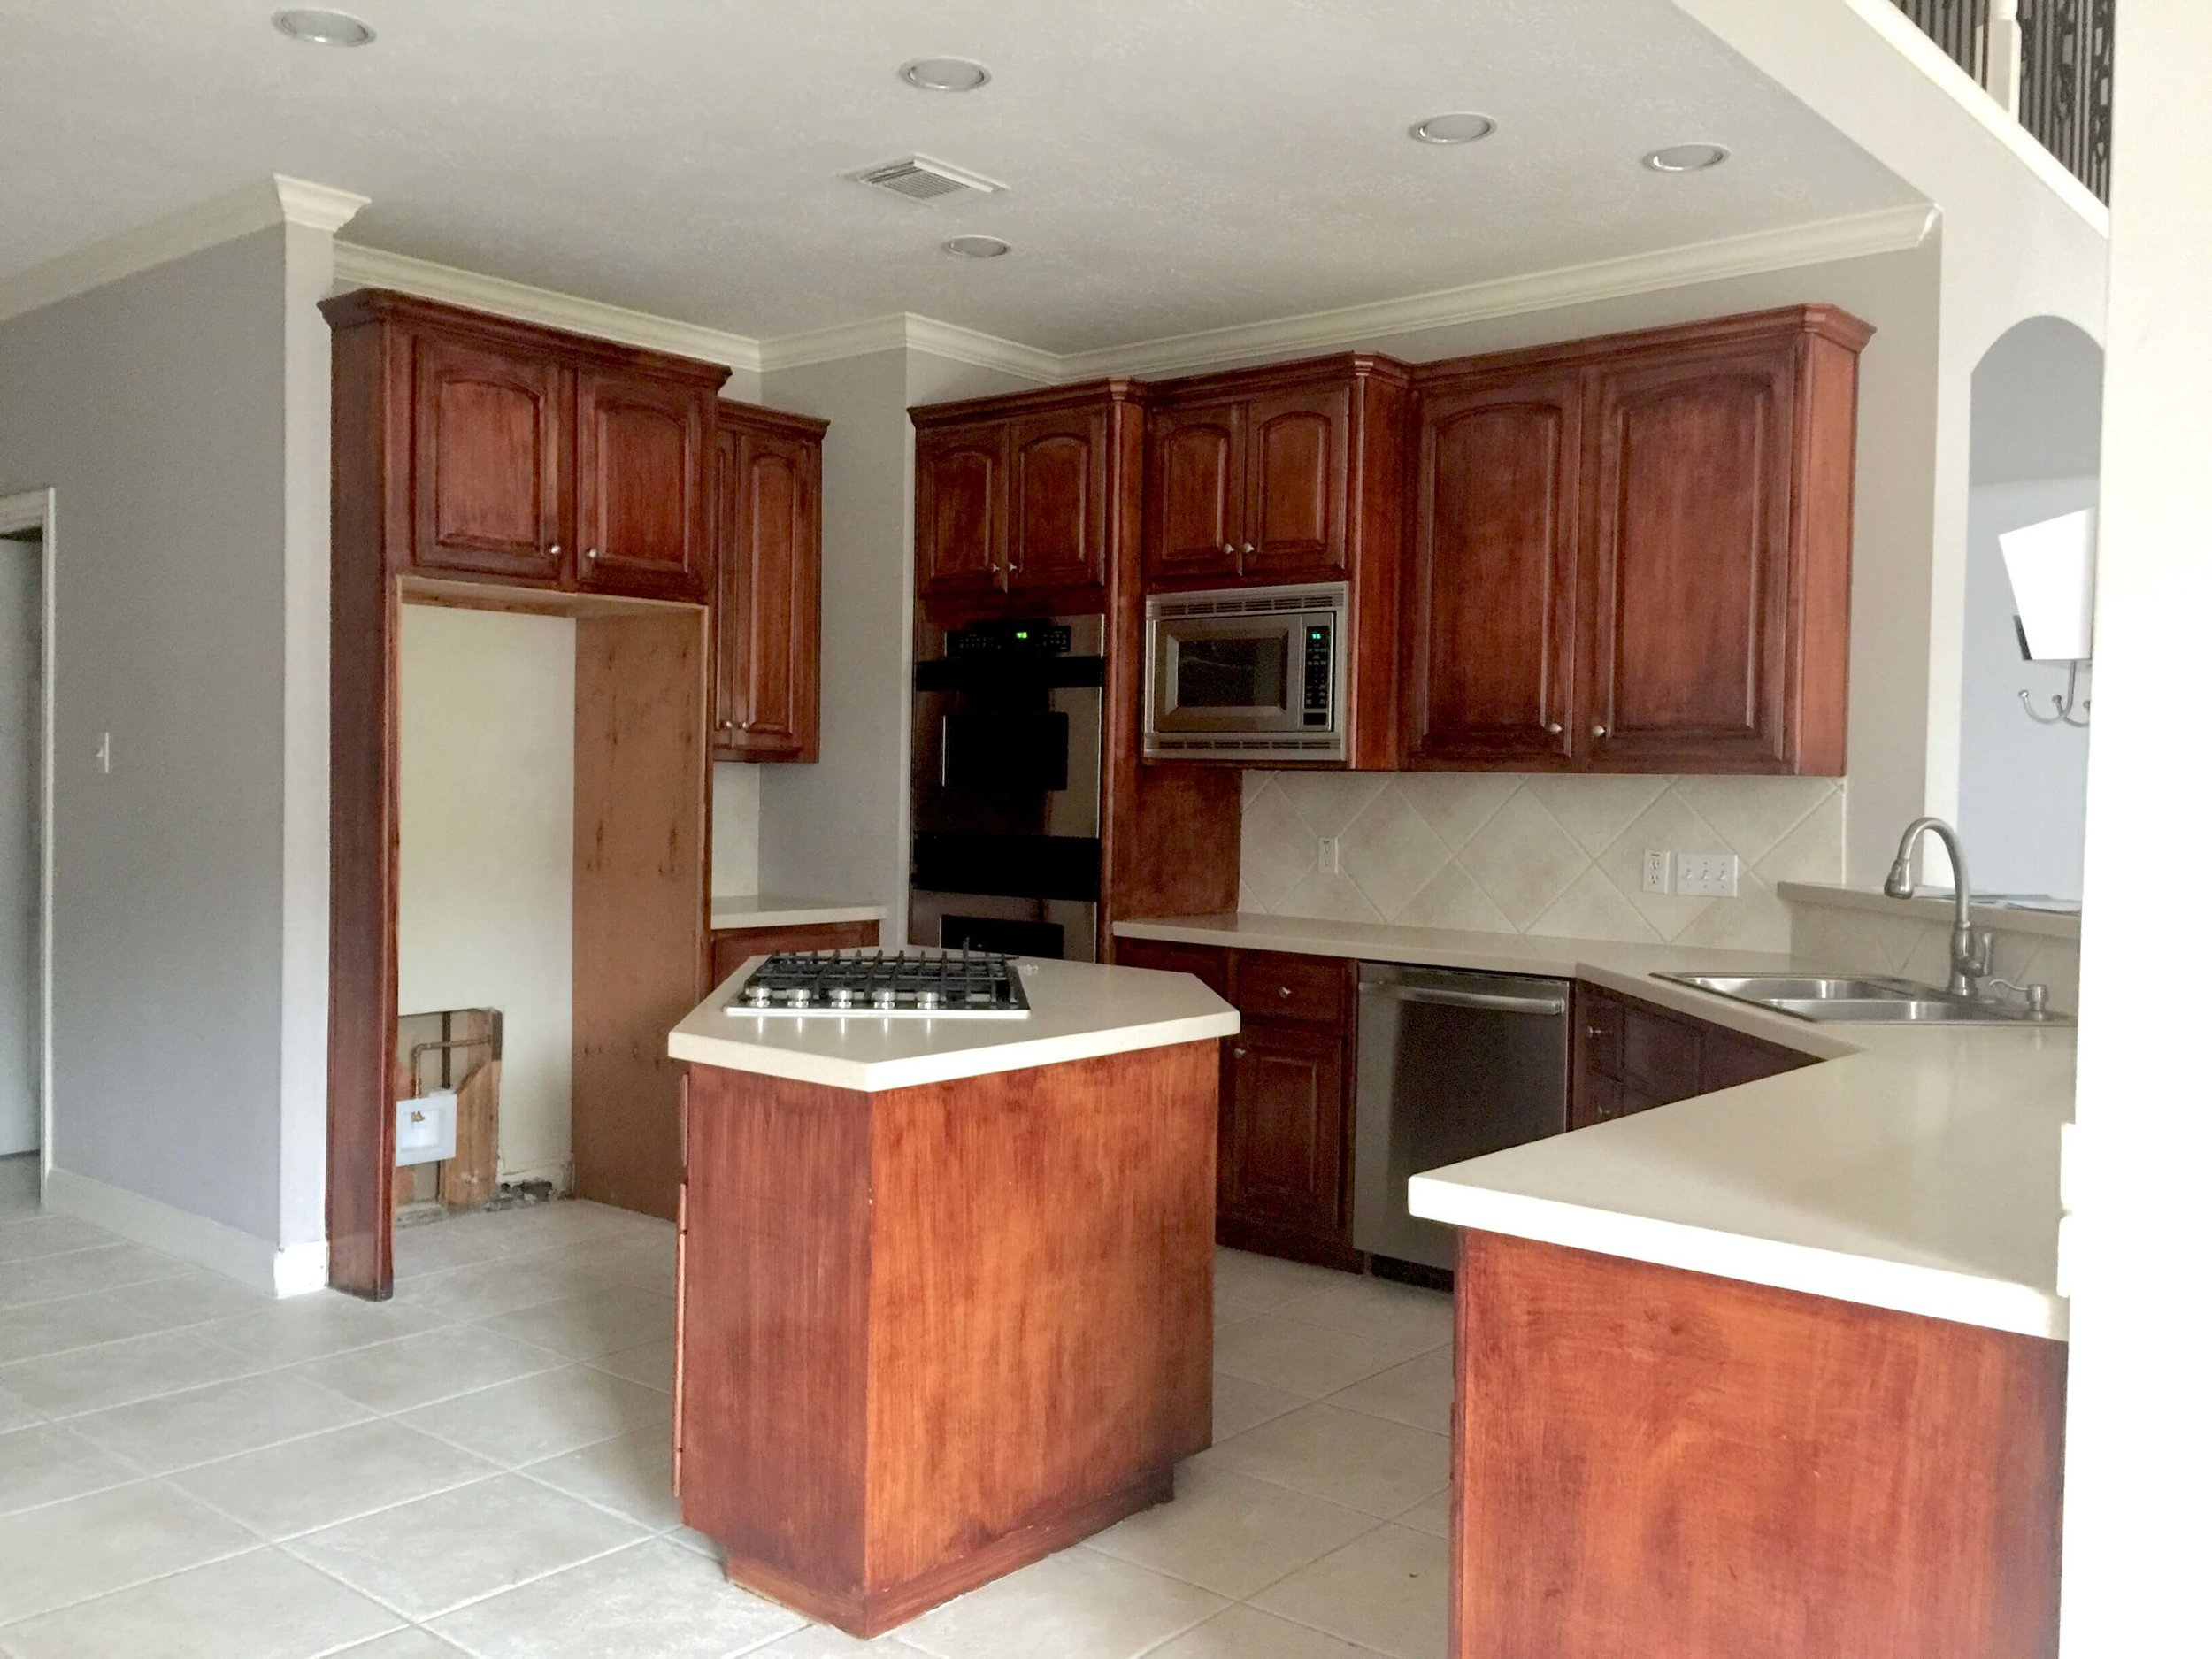 BEFORE - Kitchen Remodel with wonky island